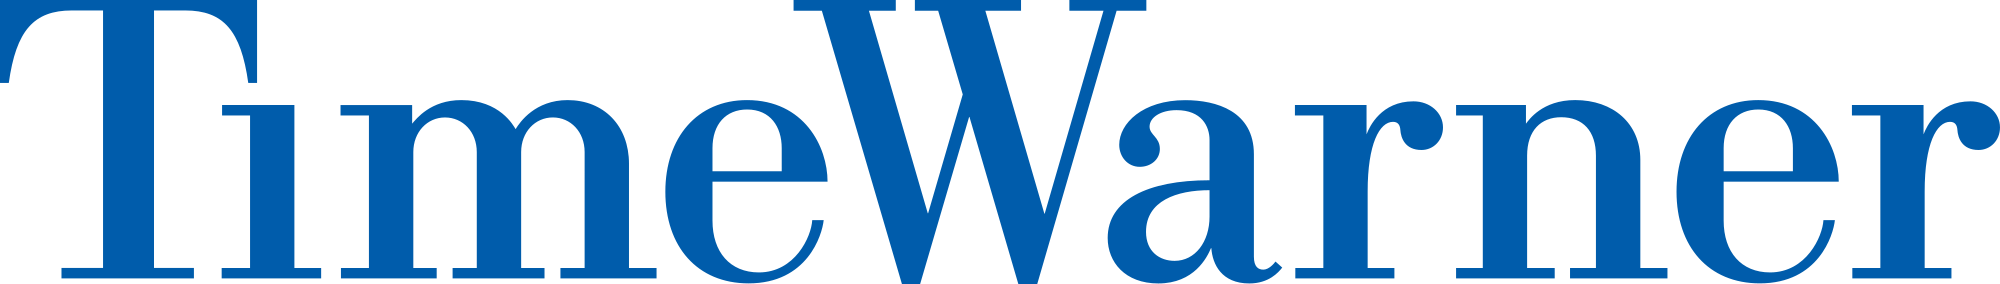 Time Warner Logo - File:Time Warner wordmark.svg - Wikimedia Commons